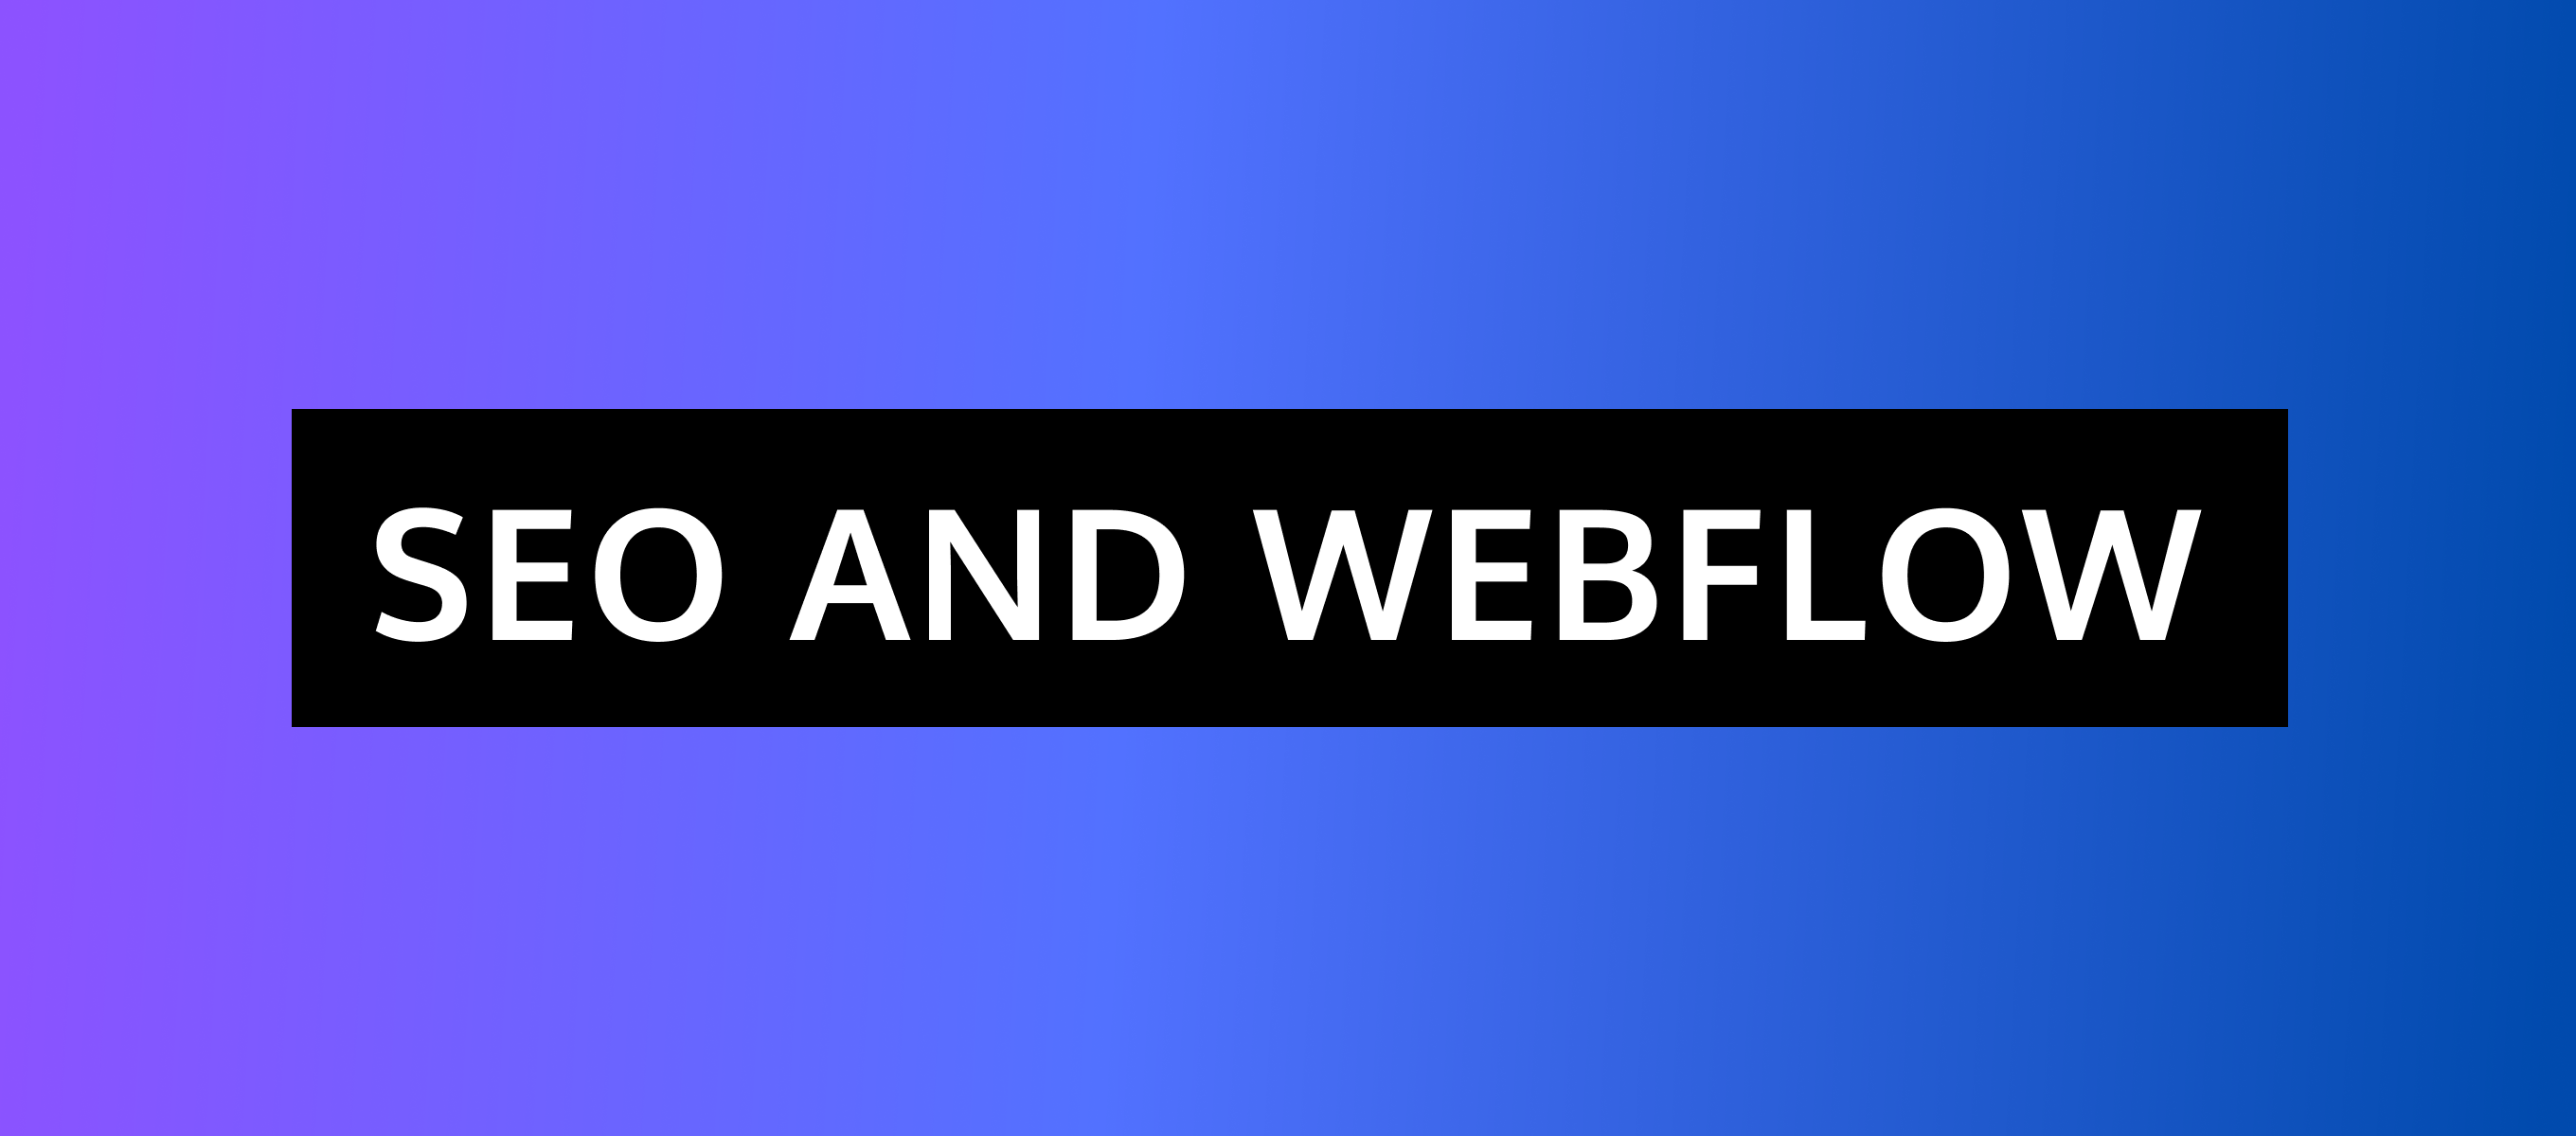 Webflow SEO - Technical Checklist For Webflow Websites